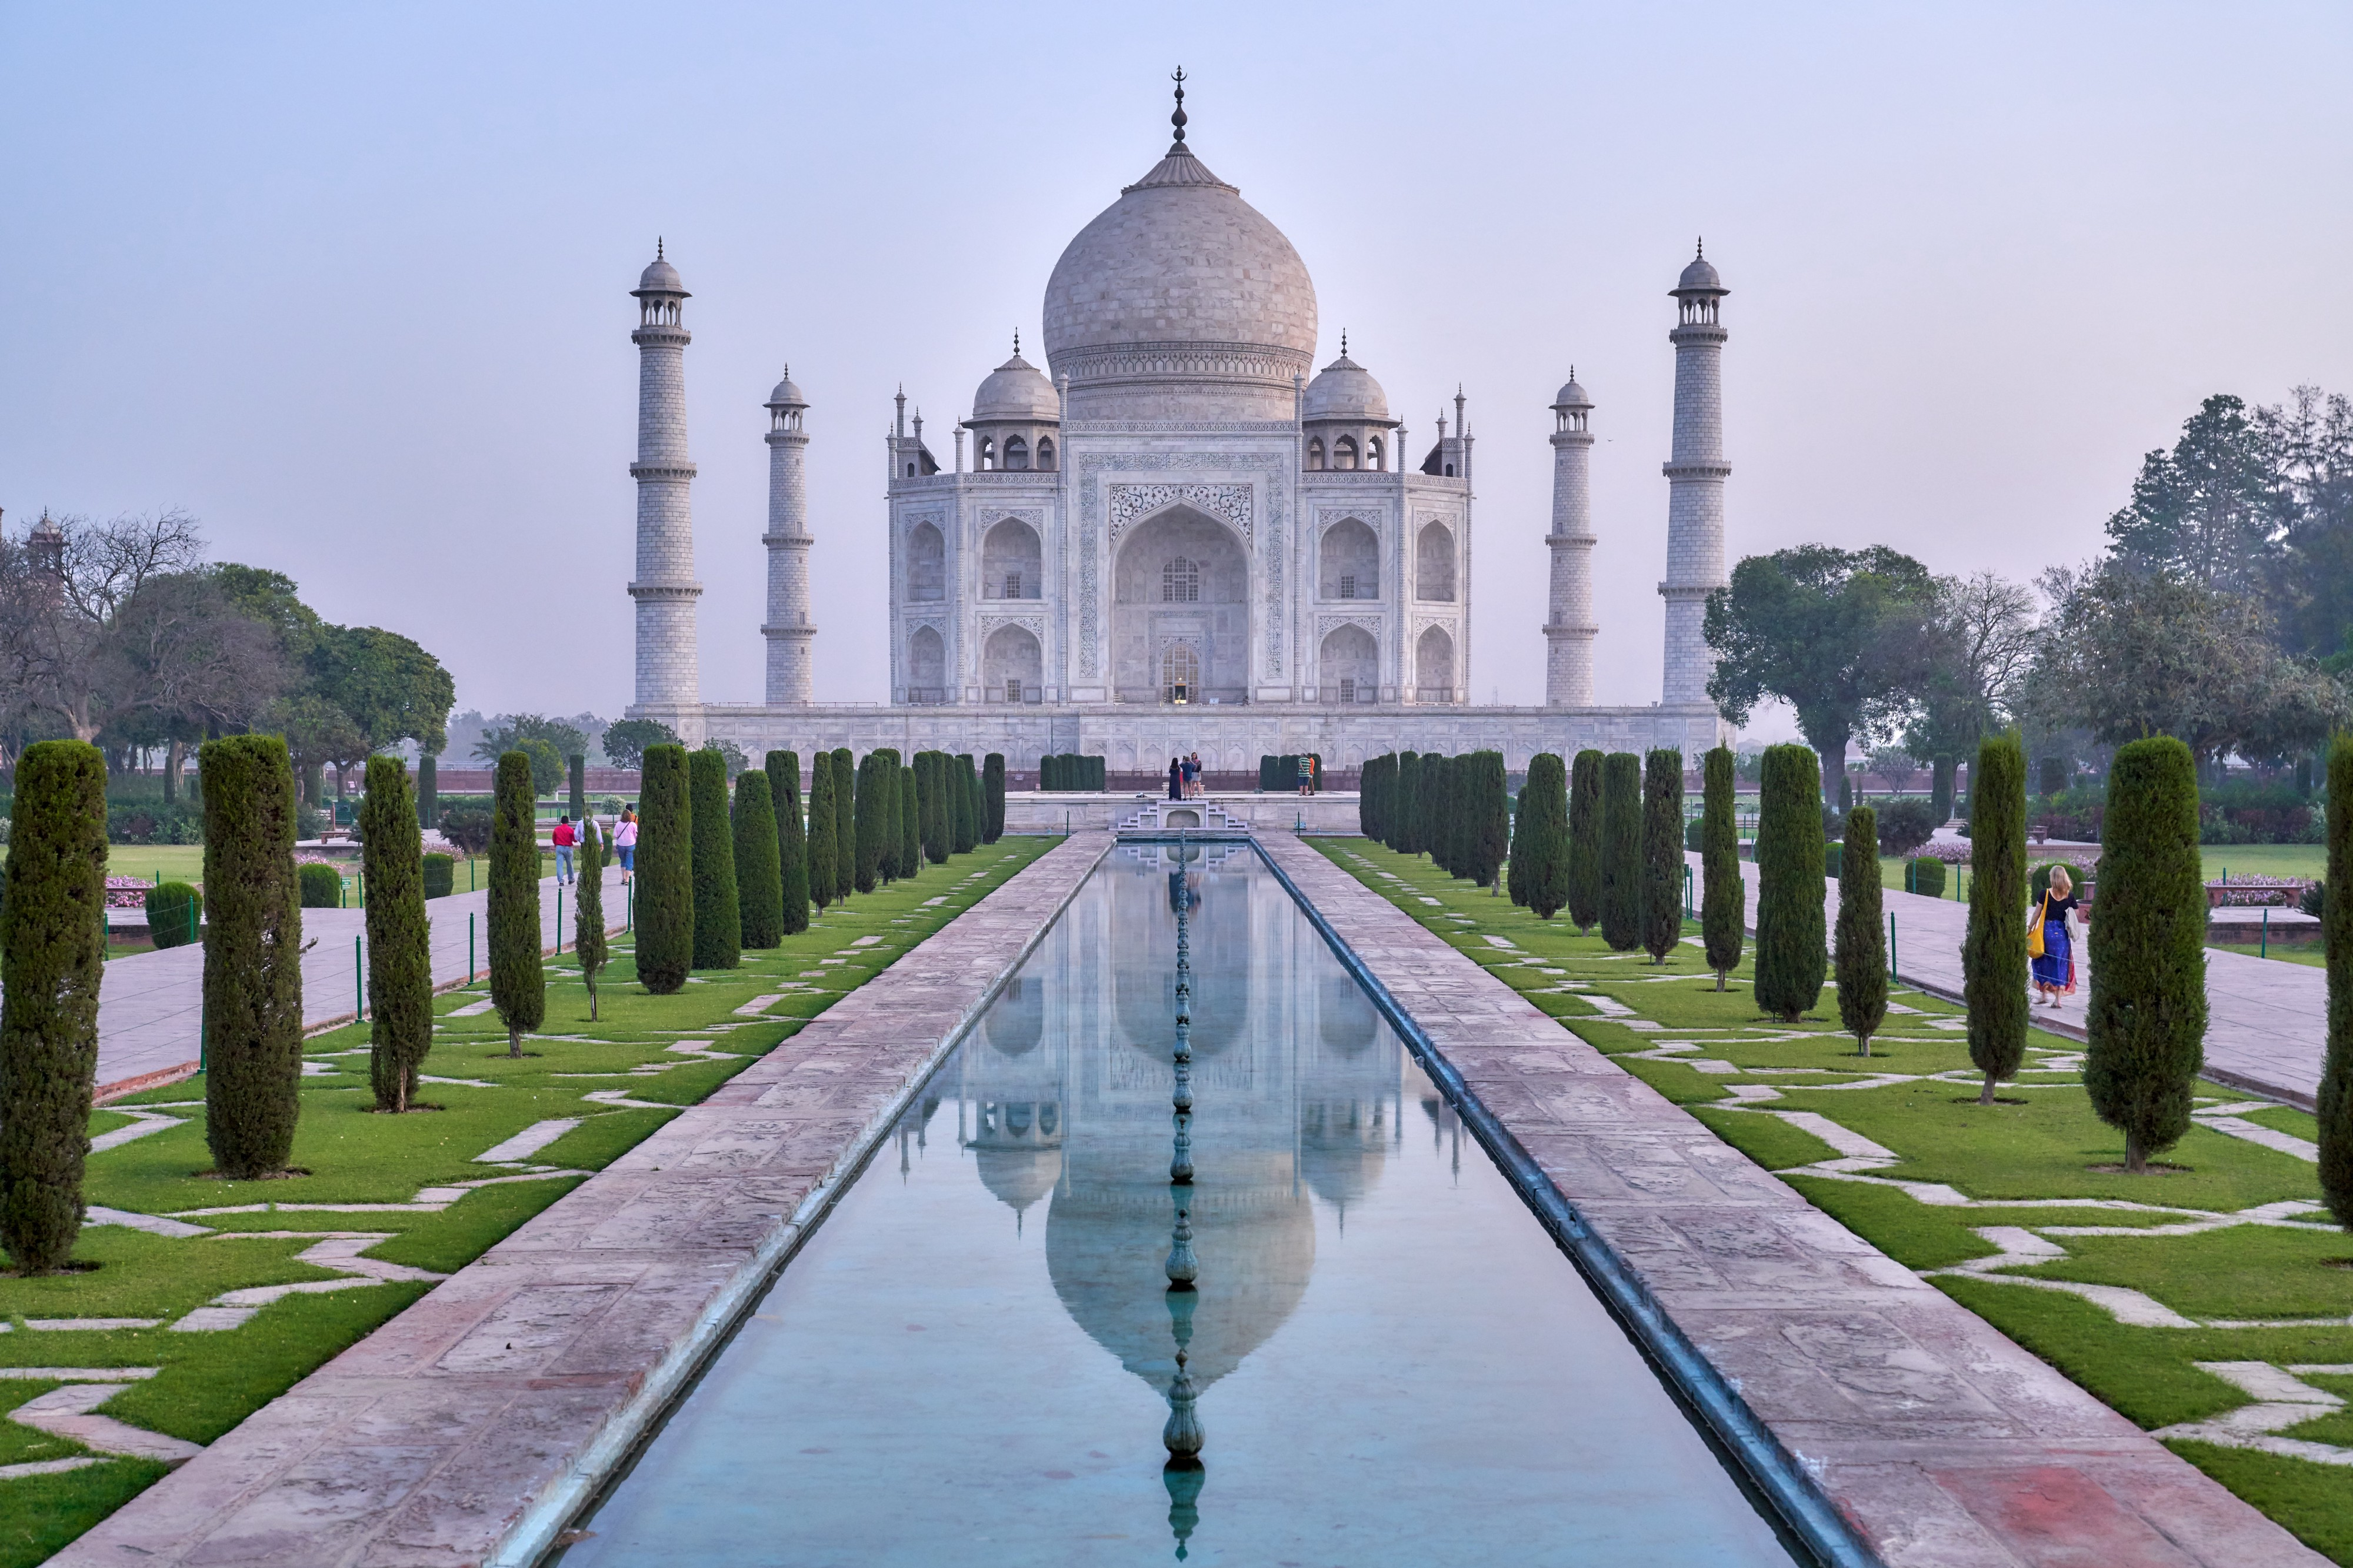 The front face of the Taj Mahal